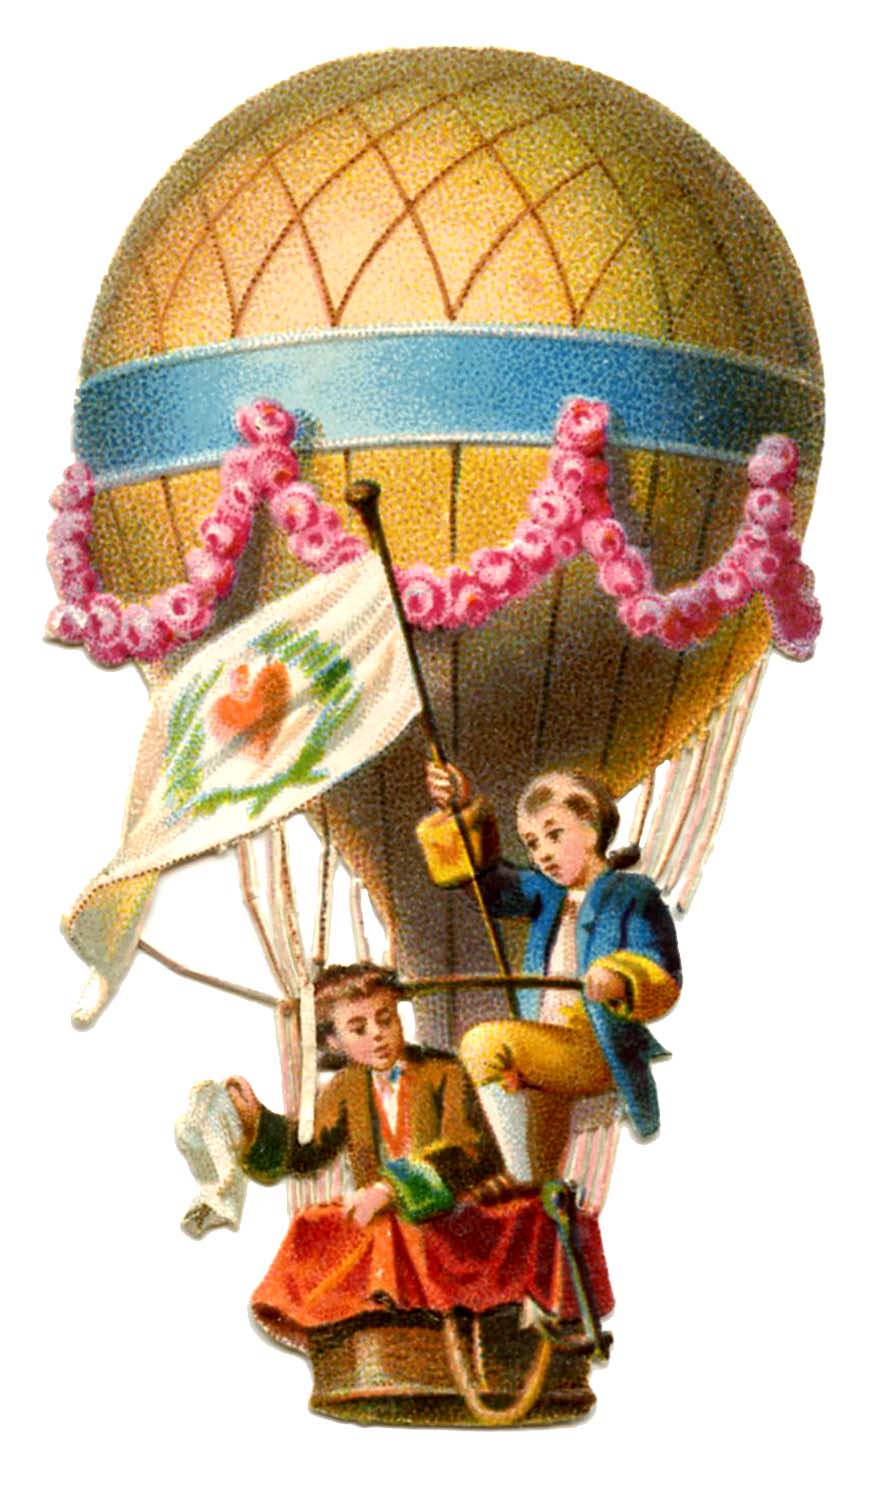 Vintage Graphic - Hot Air Balloon - The Graphics Fairy